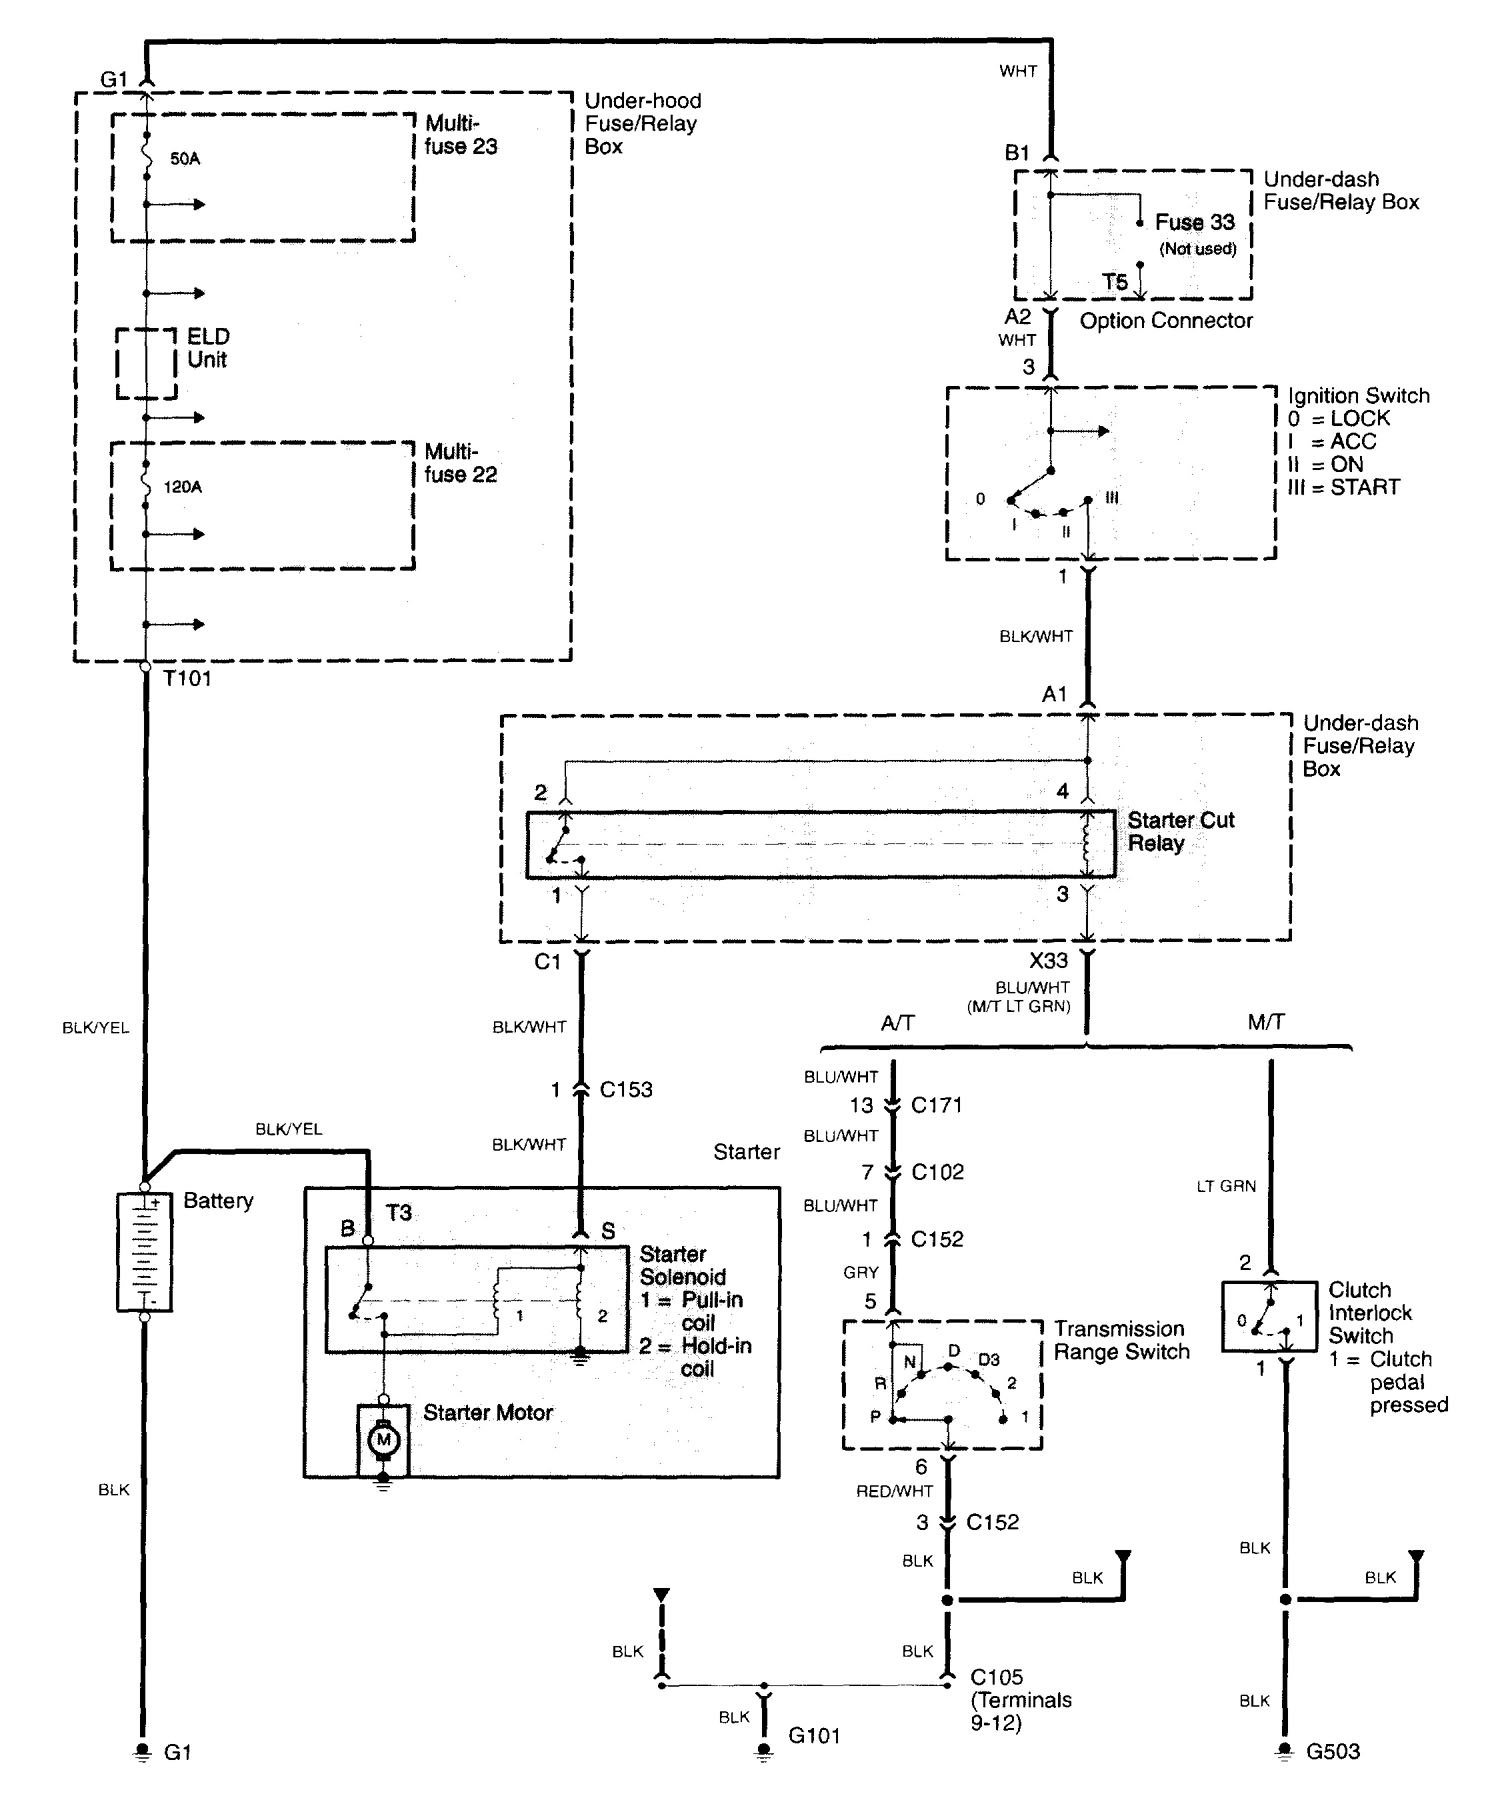 Acura Tl  2003 - 2005  - Wiring Diagrams - Starting